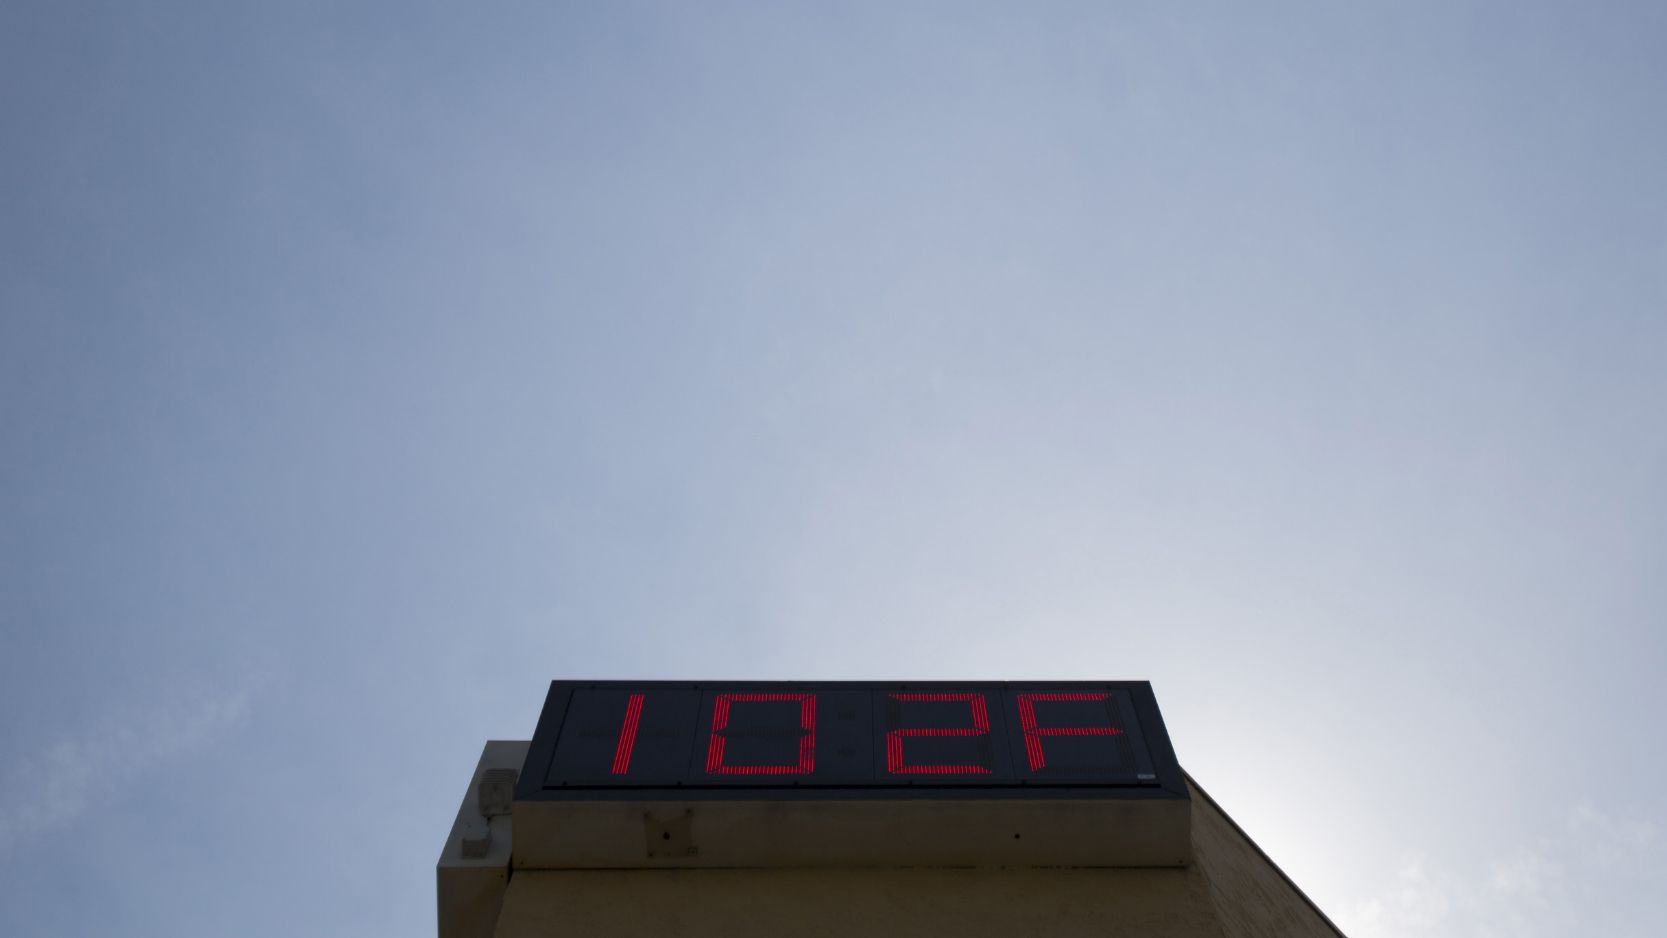 A sign displays the current temperature of 102 degrees Fahrenheit (39 degrees Celsius) in Pasadena, California May 16, 2014. A high pressure system brought record breaking heat to Southern California. REUTERS/Mario Anzuoni